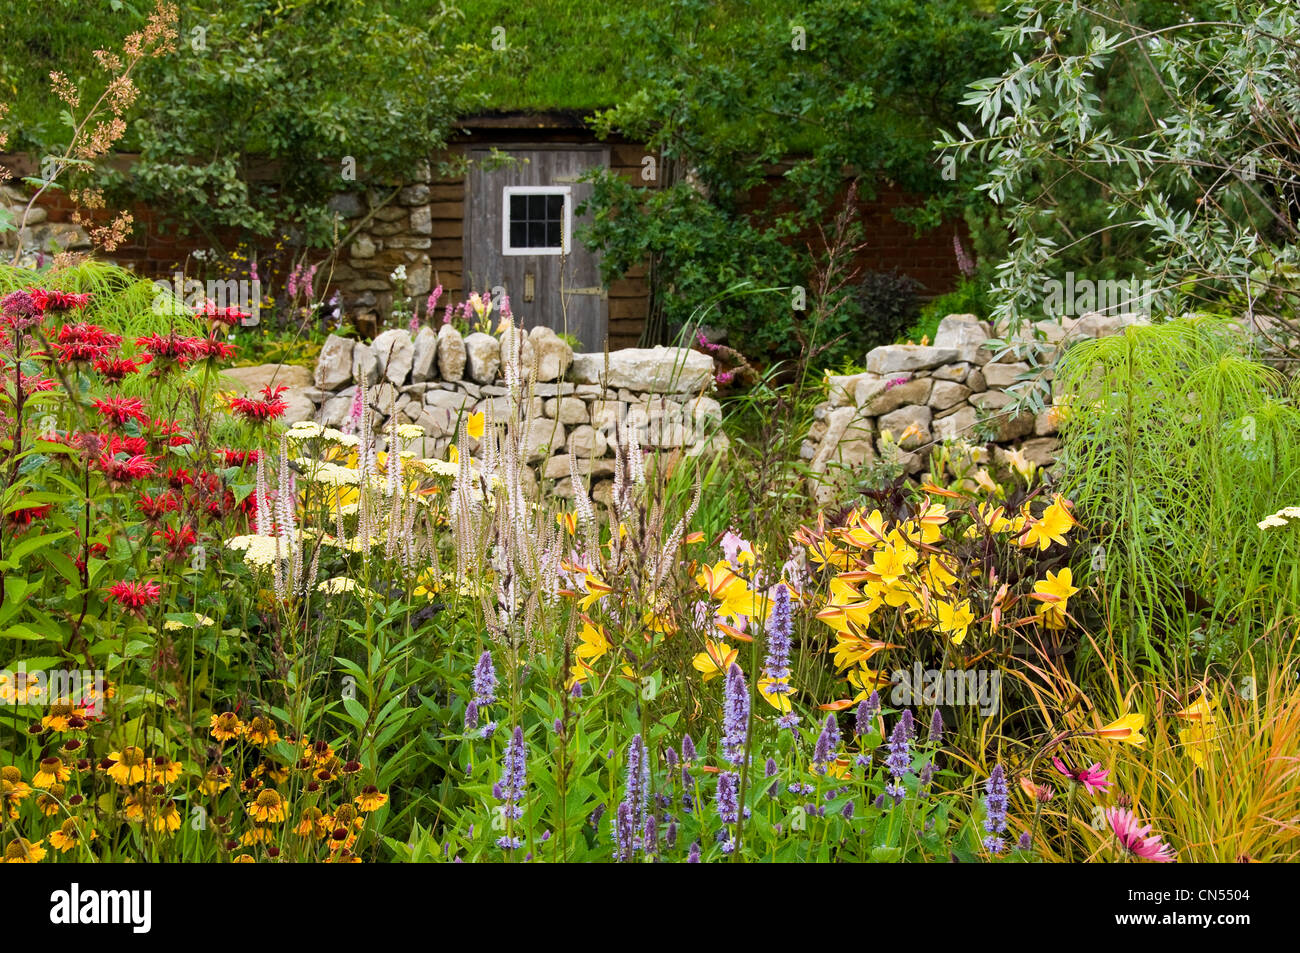 Horizontal view of a traditional wildlife-friendly country cottage garden with plants in bloom. - Stock Image